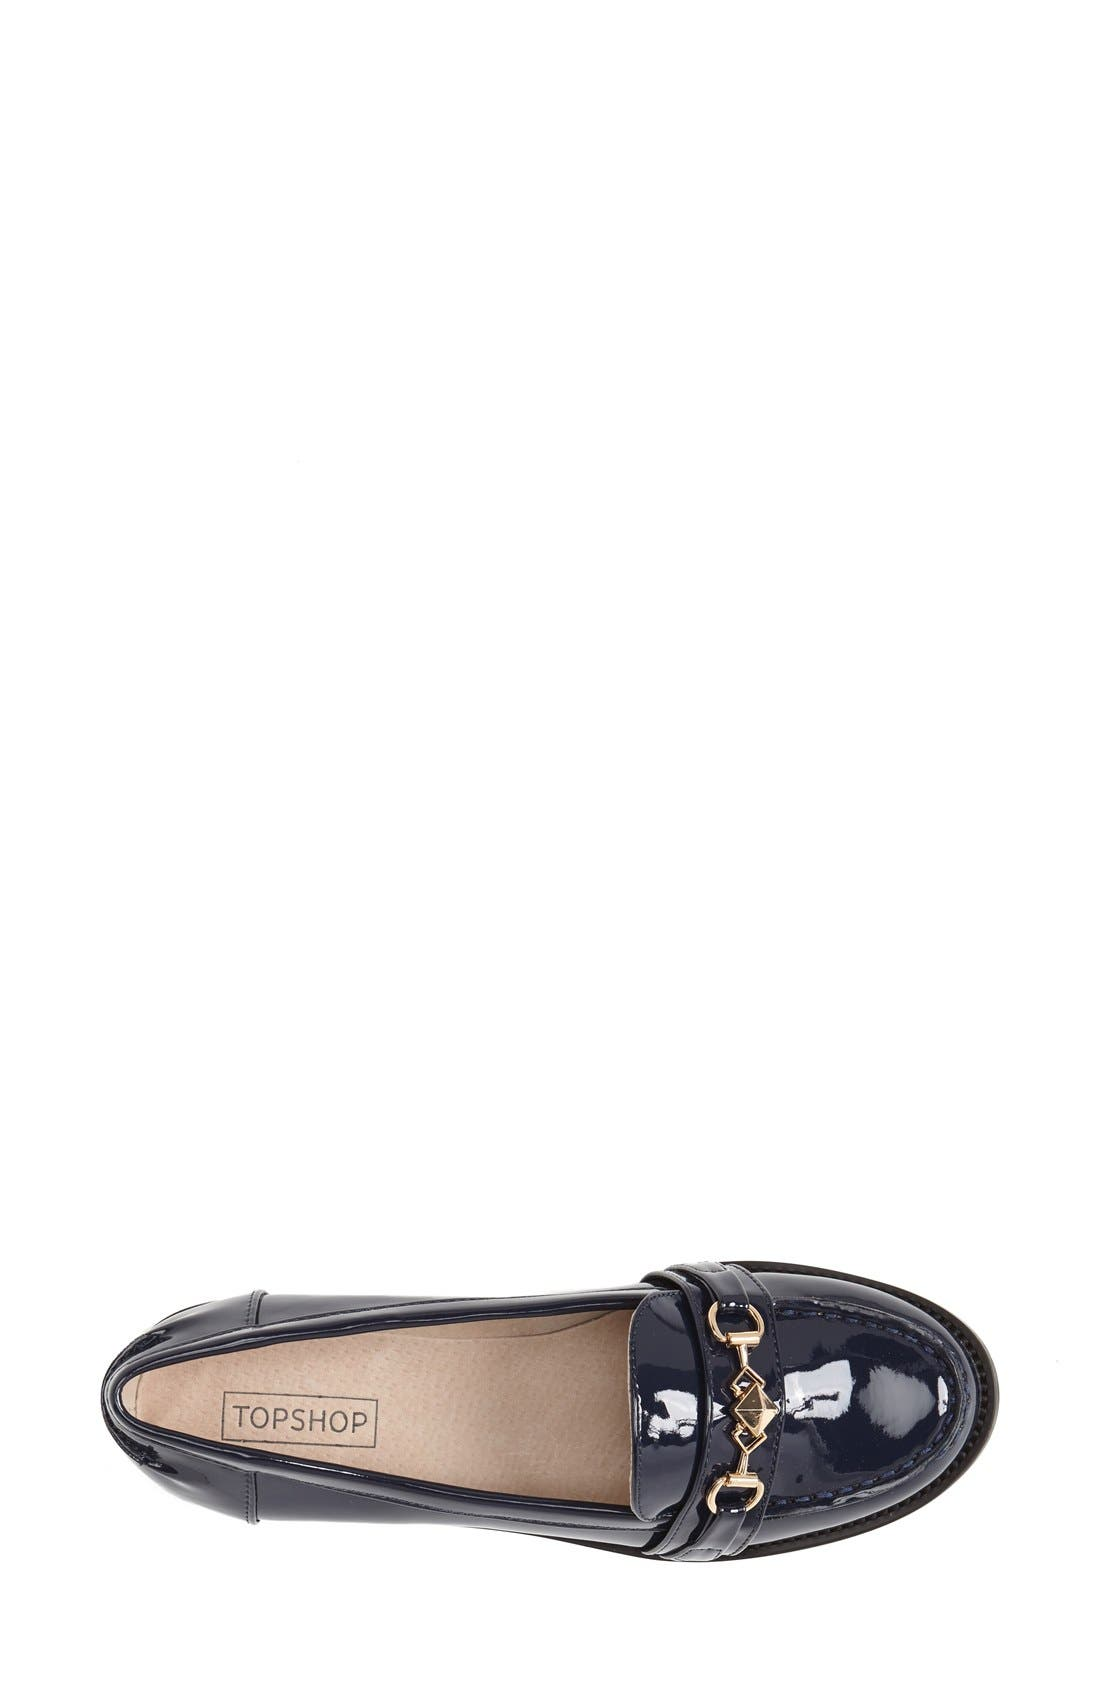 Alternate Image 3  - Topshop 'Latch' Trim Loafer (Women)